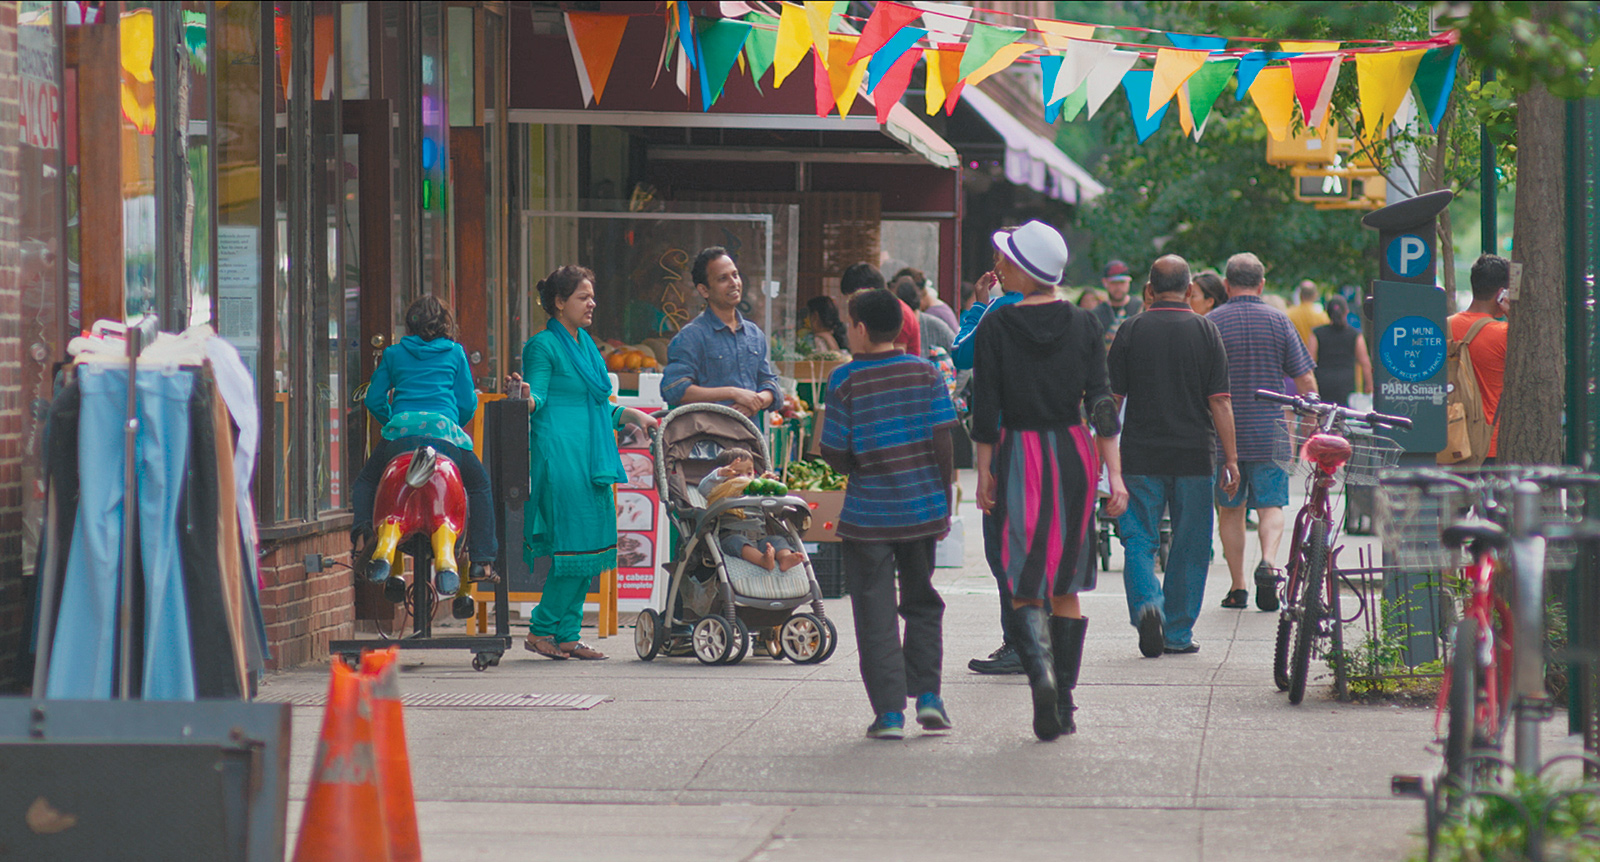 Thirty-seventh Avenue, Jackson Heights, Queens; from Frederick Wiseman's documentary film In Jackson Heights